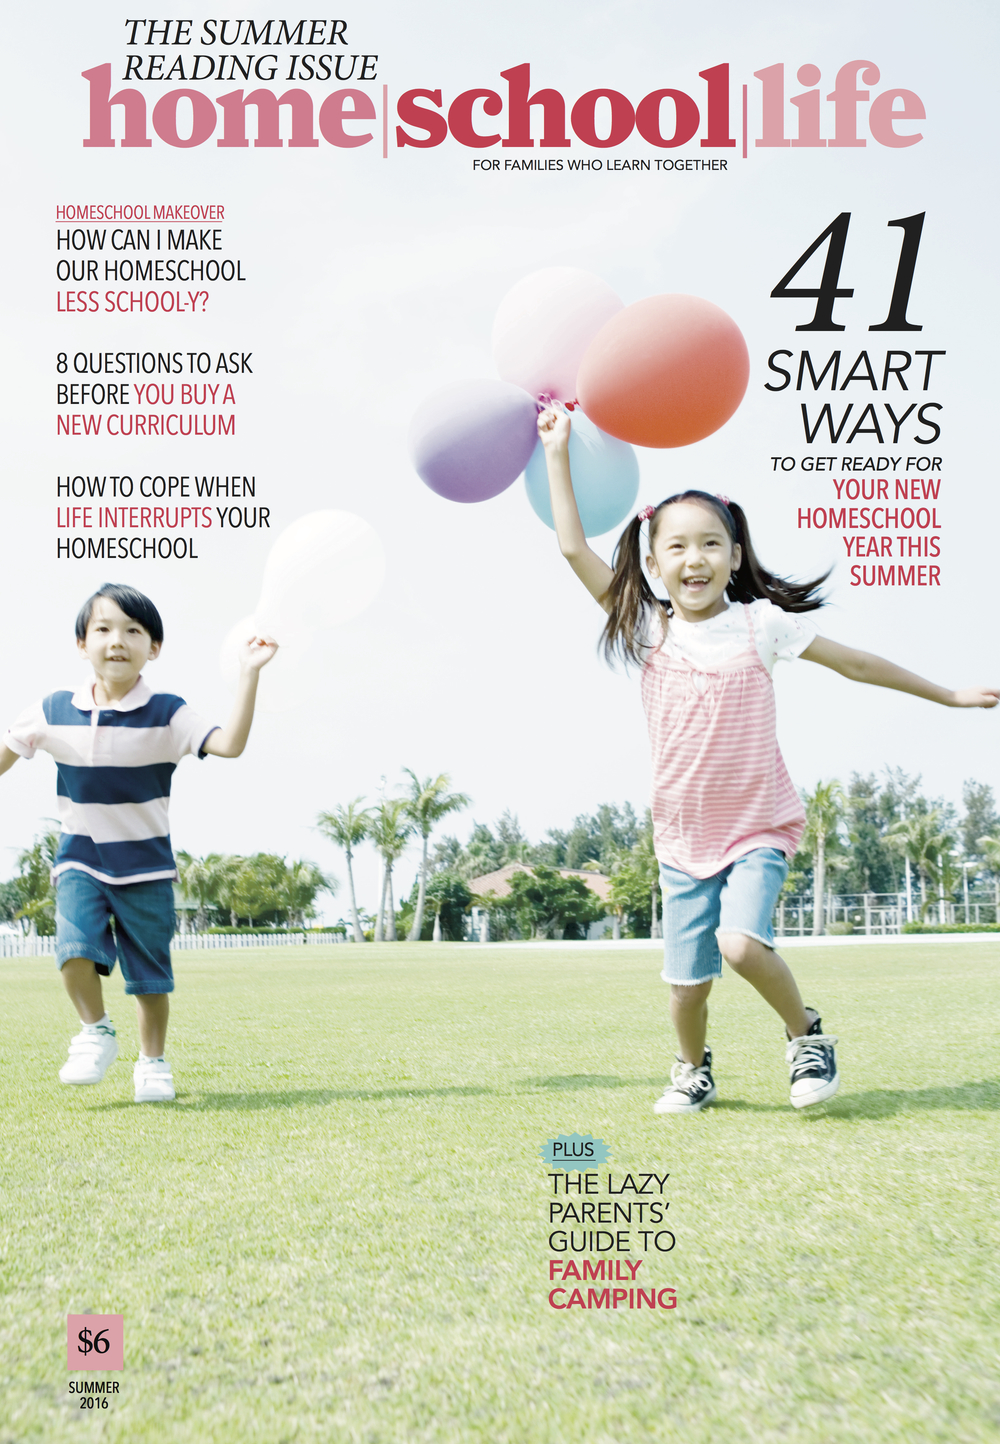 9 things I love about the summer issue of home/school/life, my favorite secular homeschool magazine